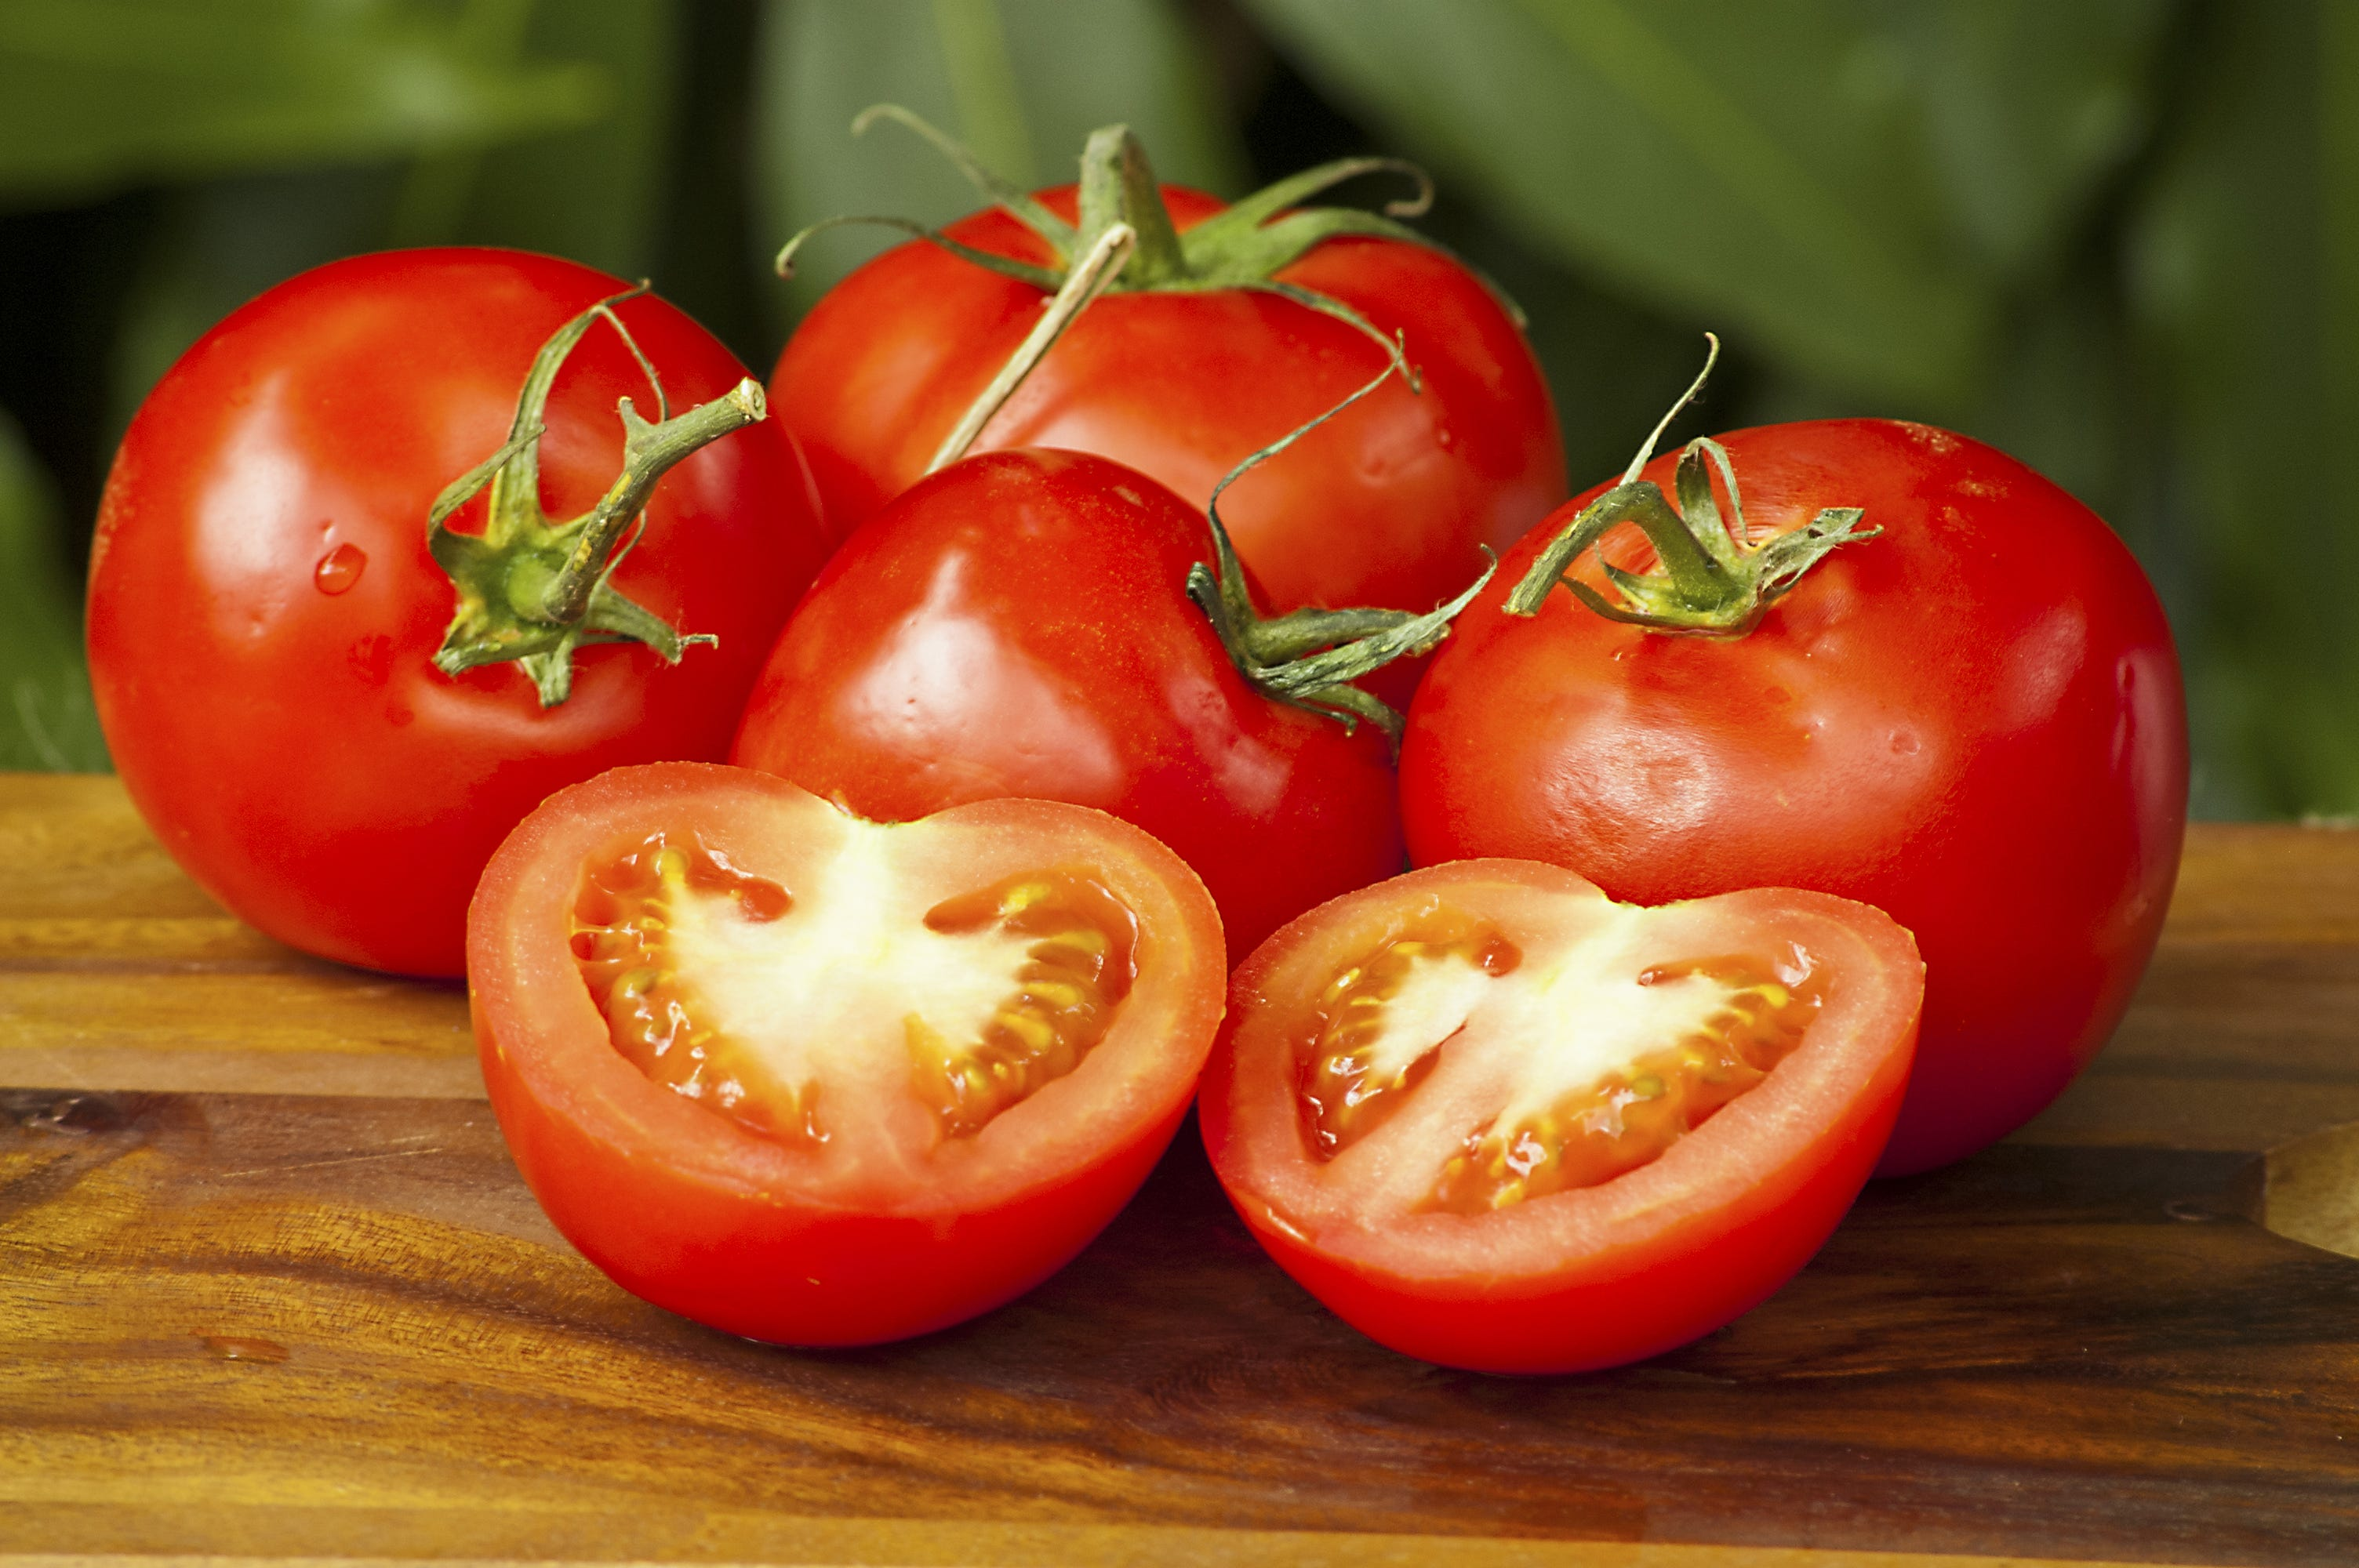 For this recipe, you will need four small to medium tomatoes.